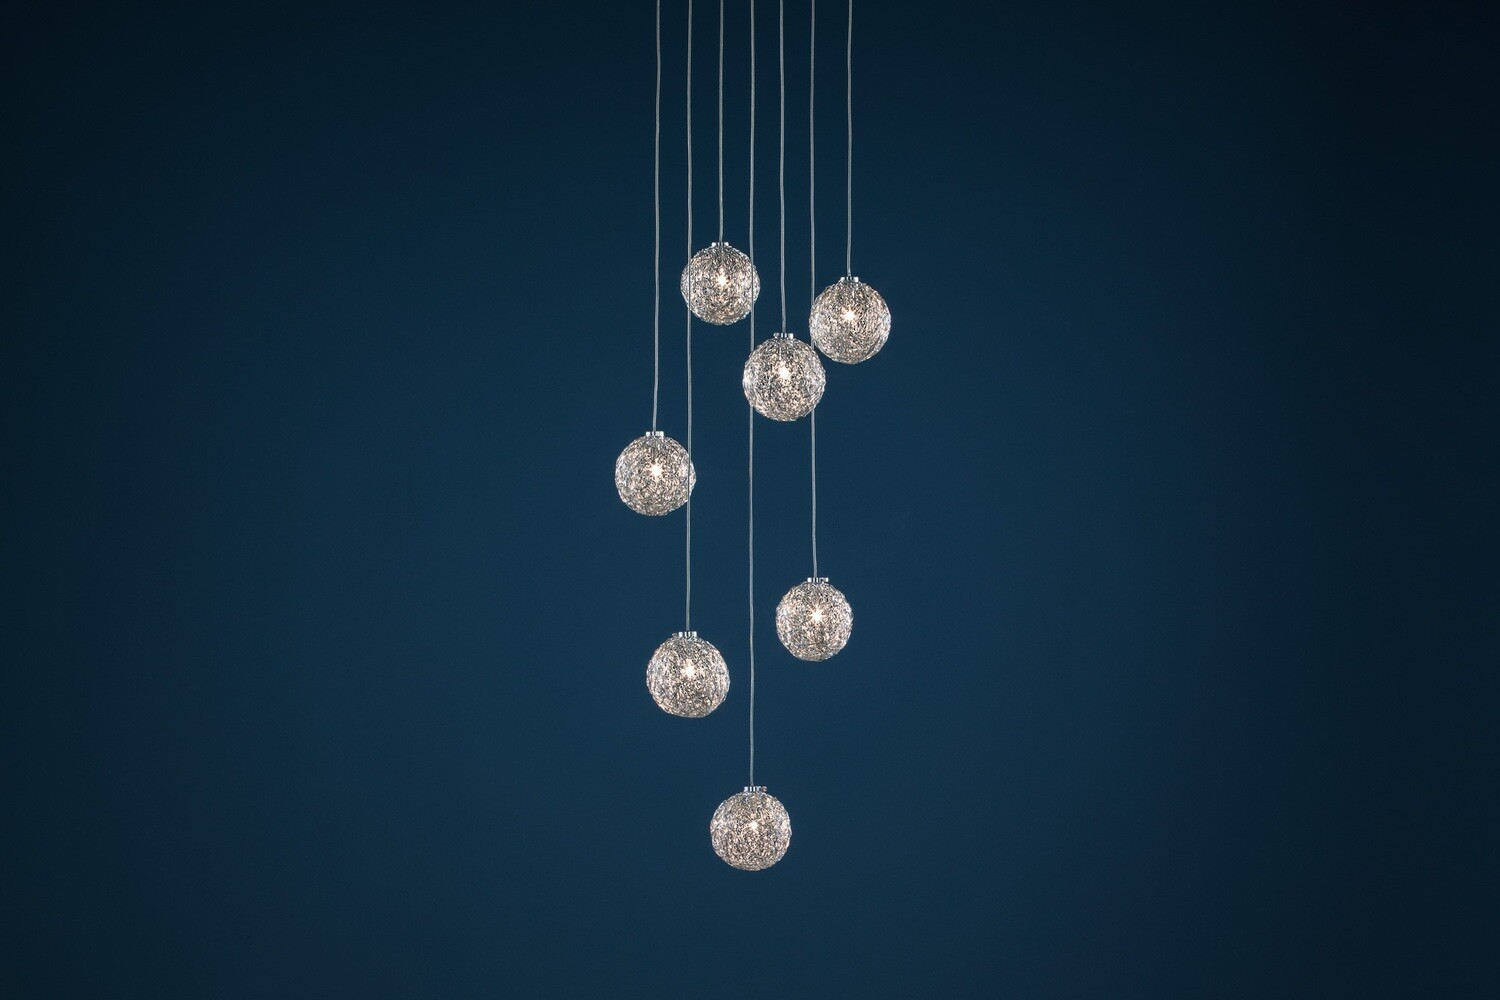 Catellani & Smith Sweet Light Chandelier Pendelleuchte